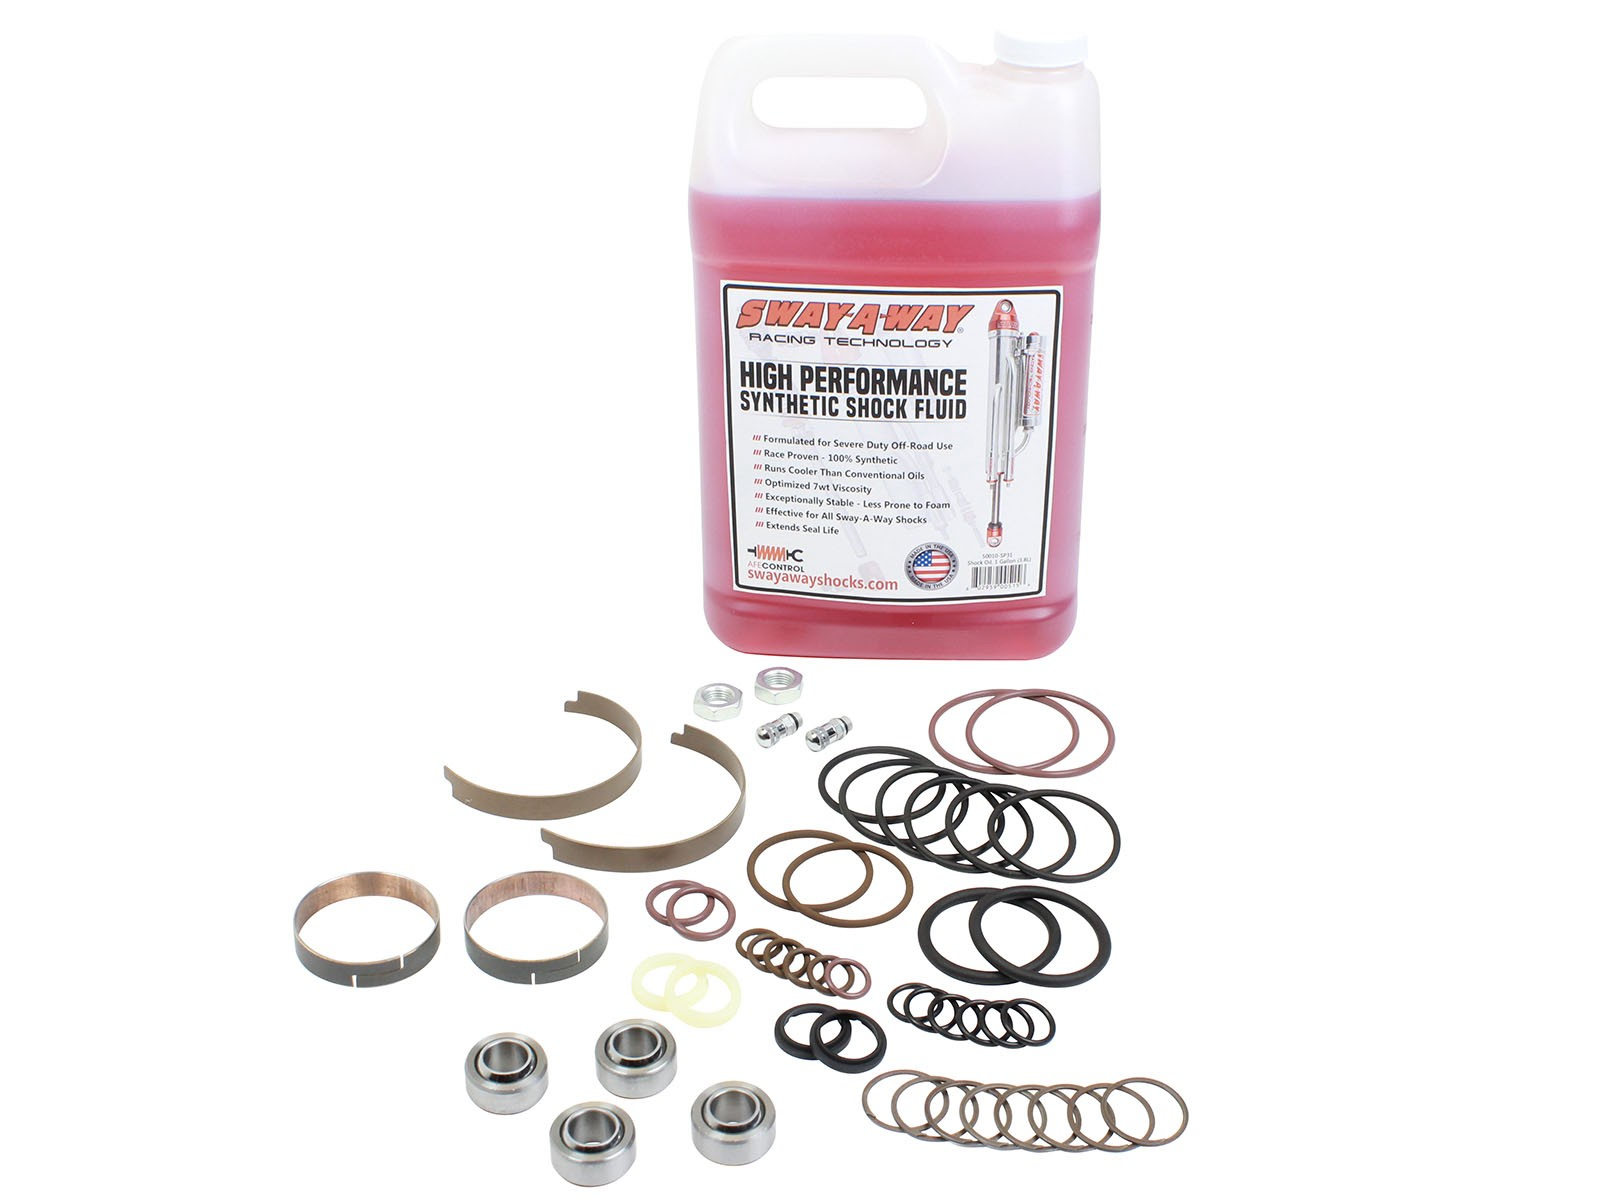 Afe Control Sway A Way 25 Shock Master Rebuild Kit 7 8 Shaft 02 Duramax Fuel Filter Housing Power